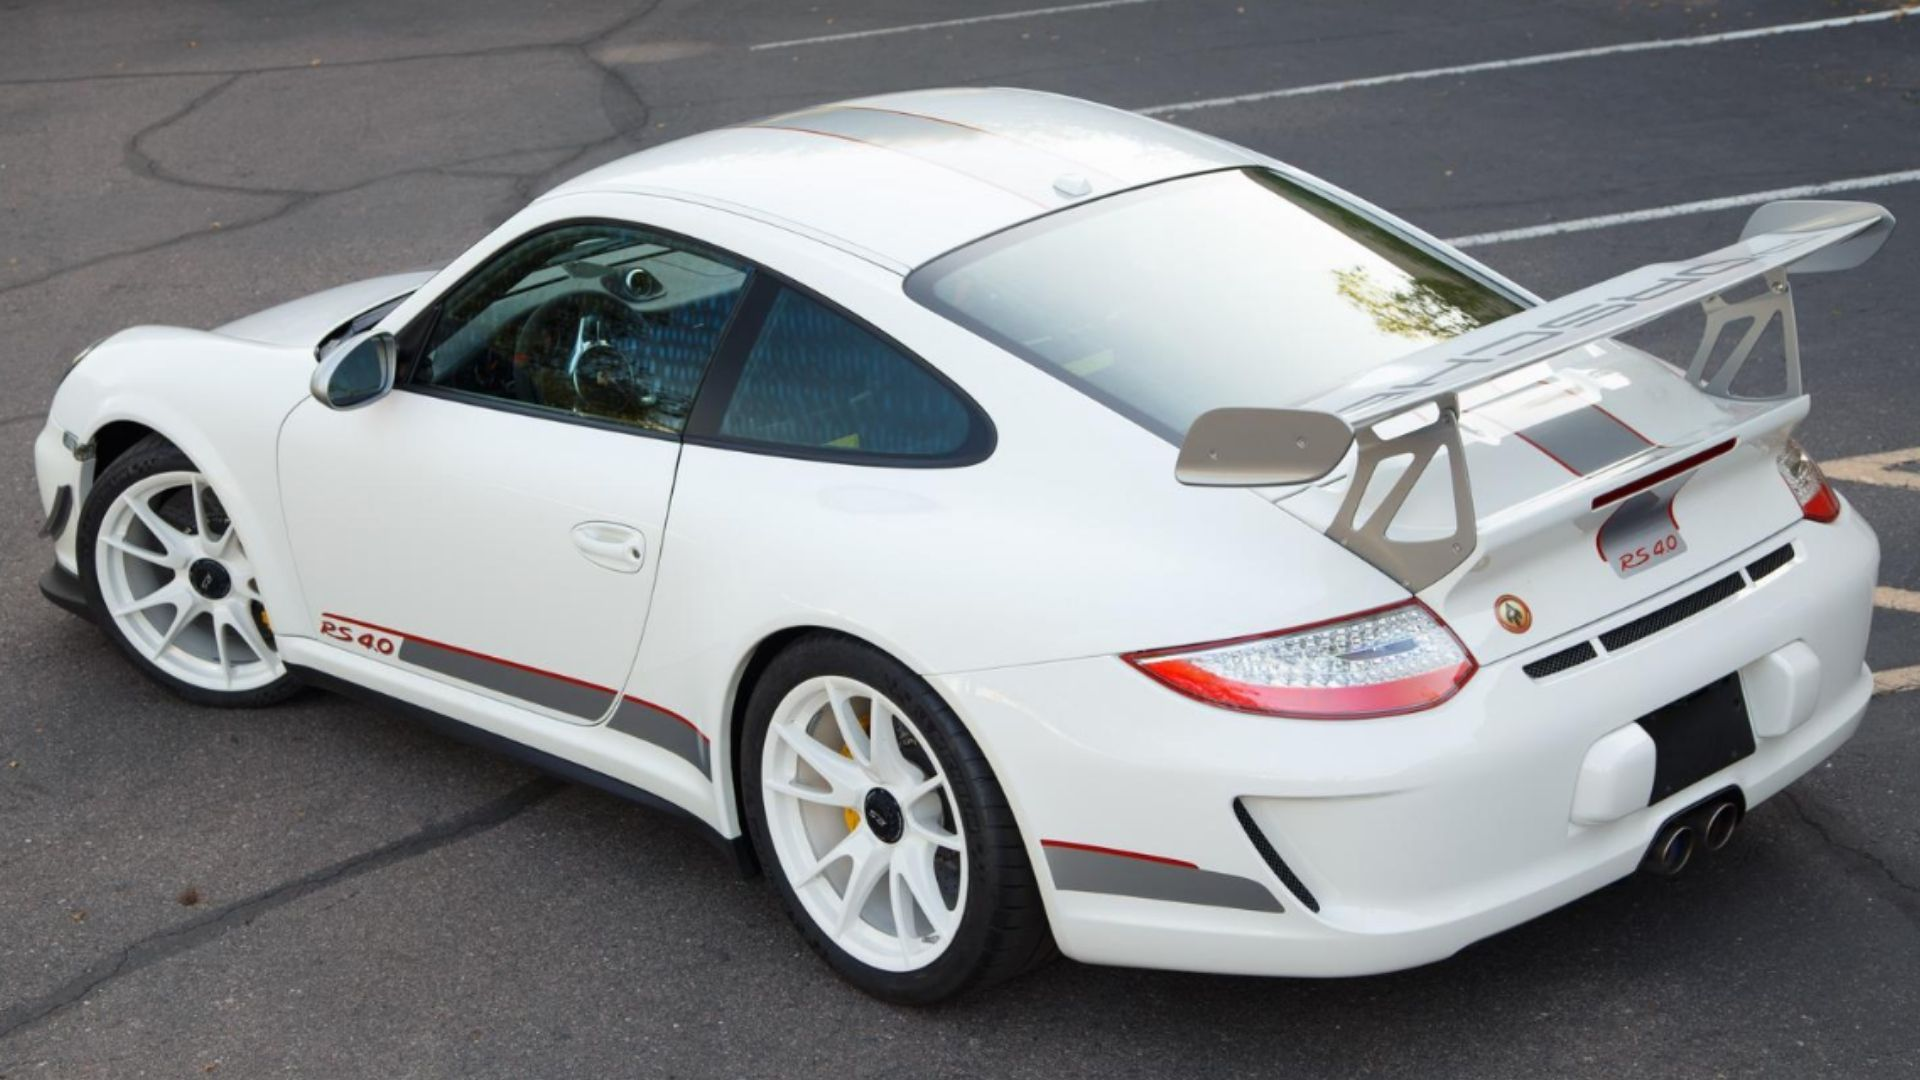 Weaponized For The Track, This 2011 Porsche GT3 RS 4.0 Is Ready For A Bidding War